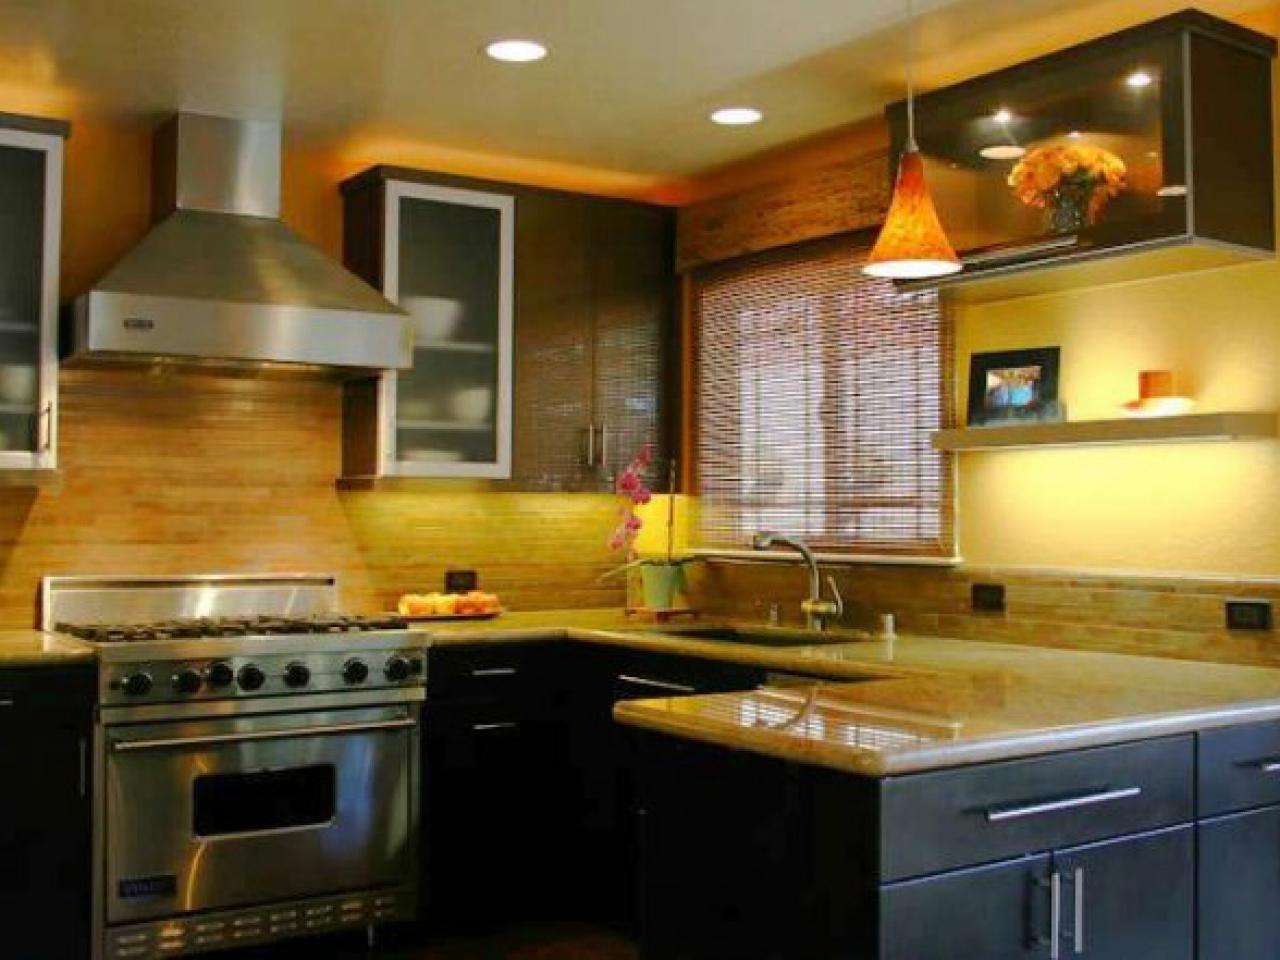 4 eco friendly kitchen upgrades my green home blog for Kitchen upgrades